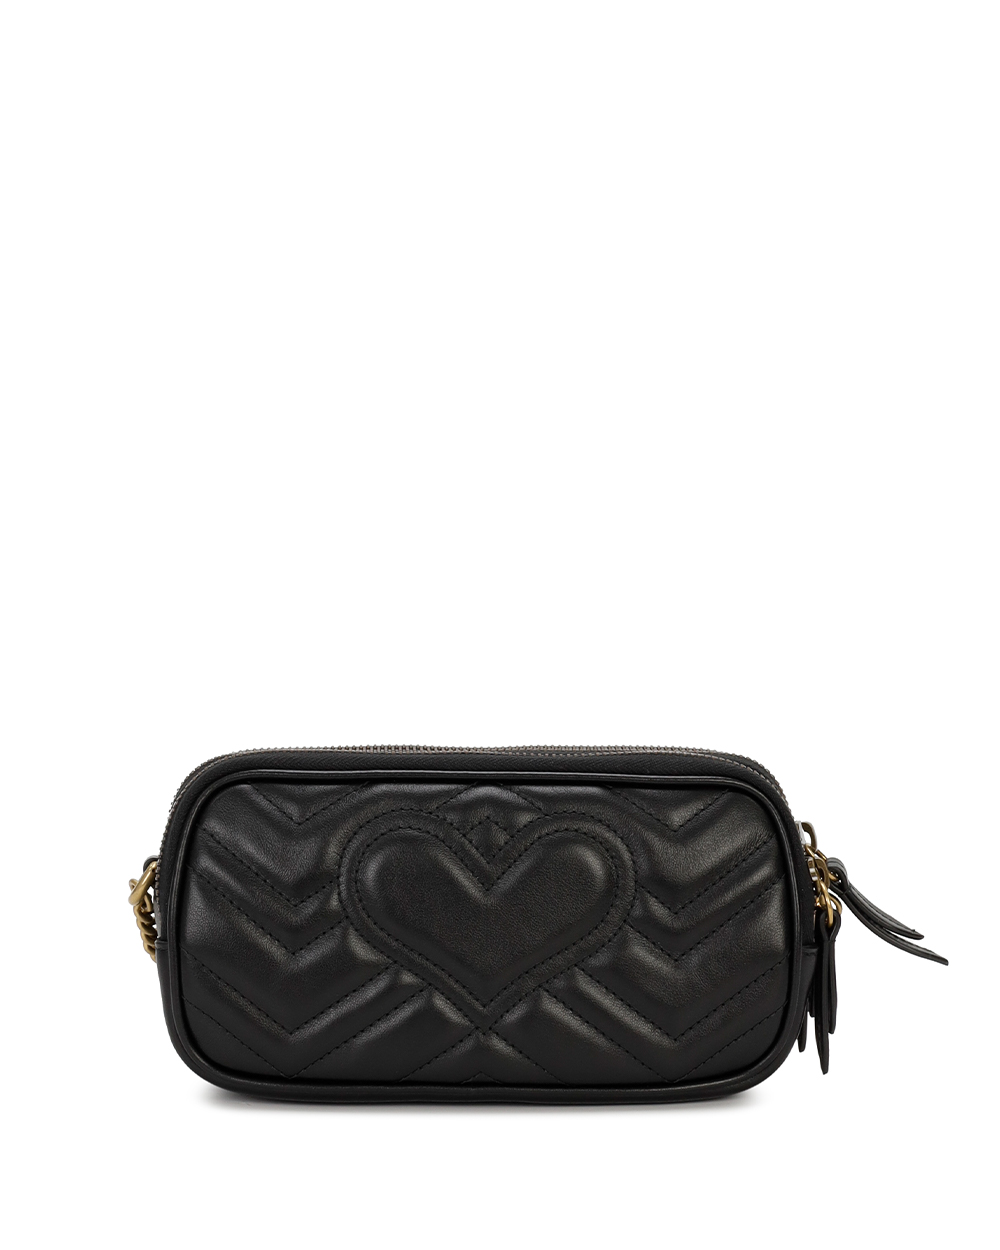 GG Marmont Mini Chain Bag 4